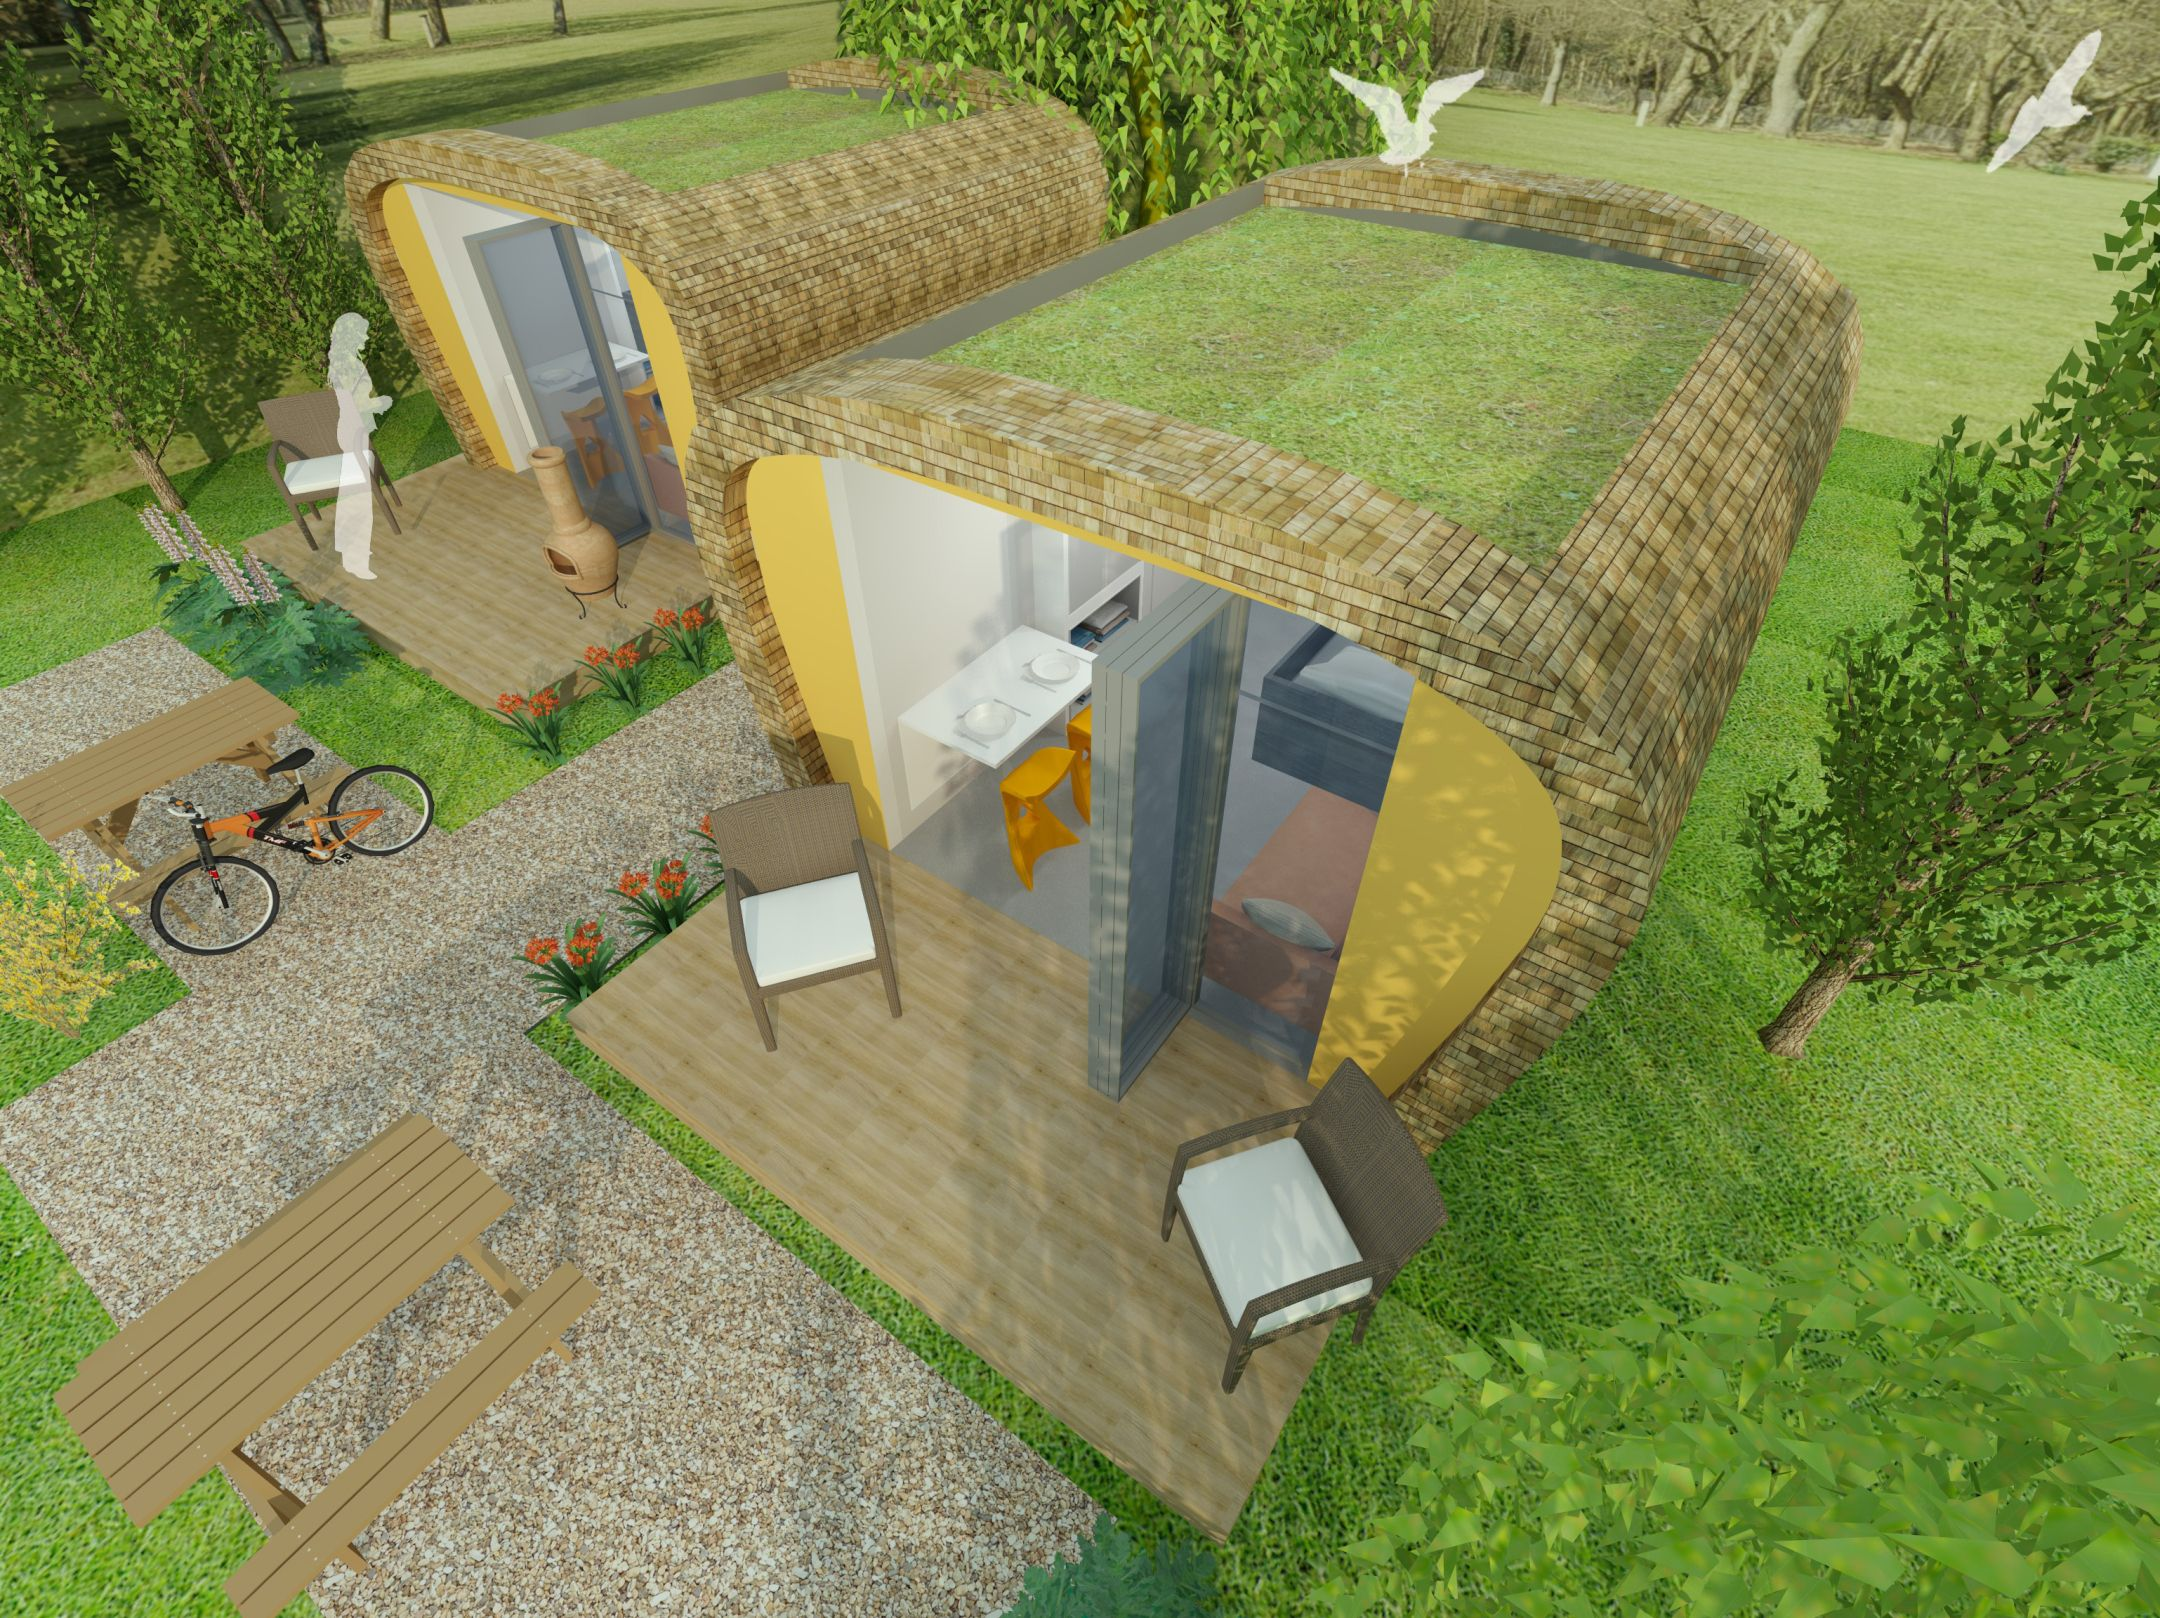 Camping Pods UK Glamping Outdoor Hotel Rooms Pod Living Ltd